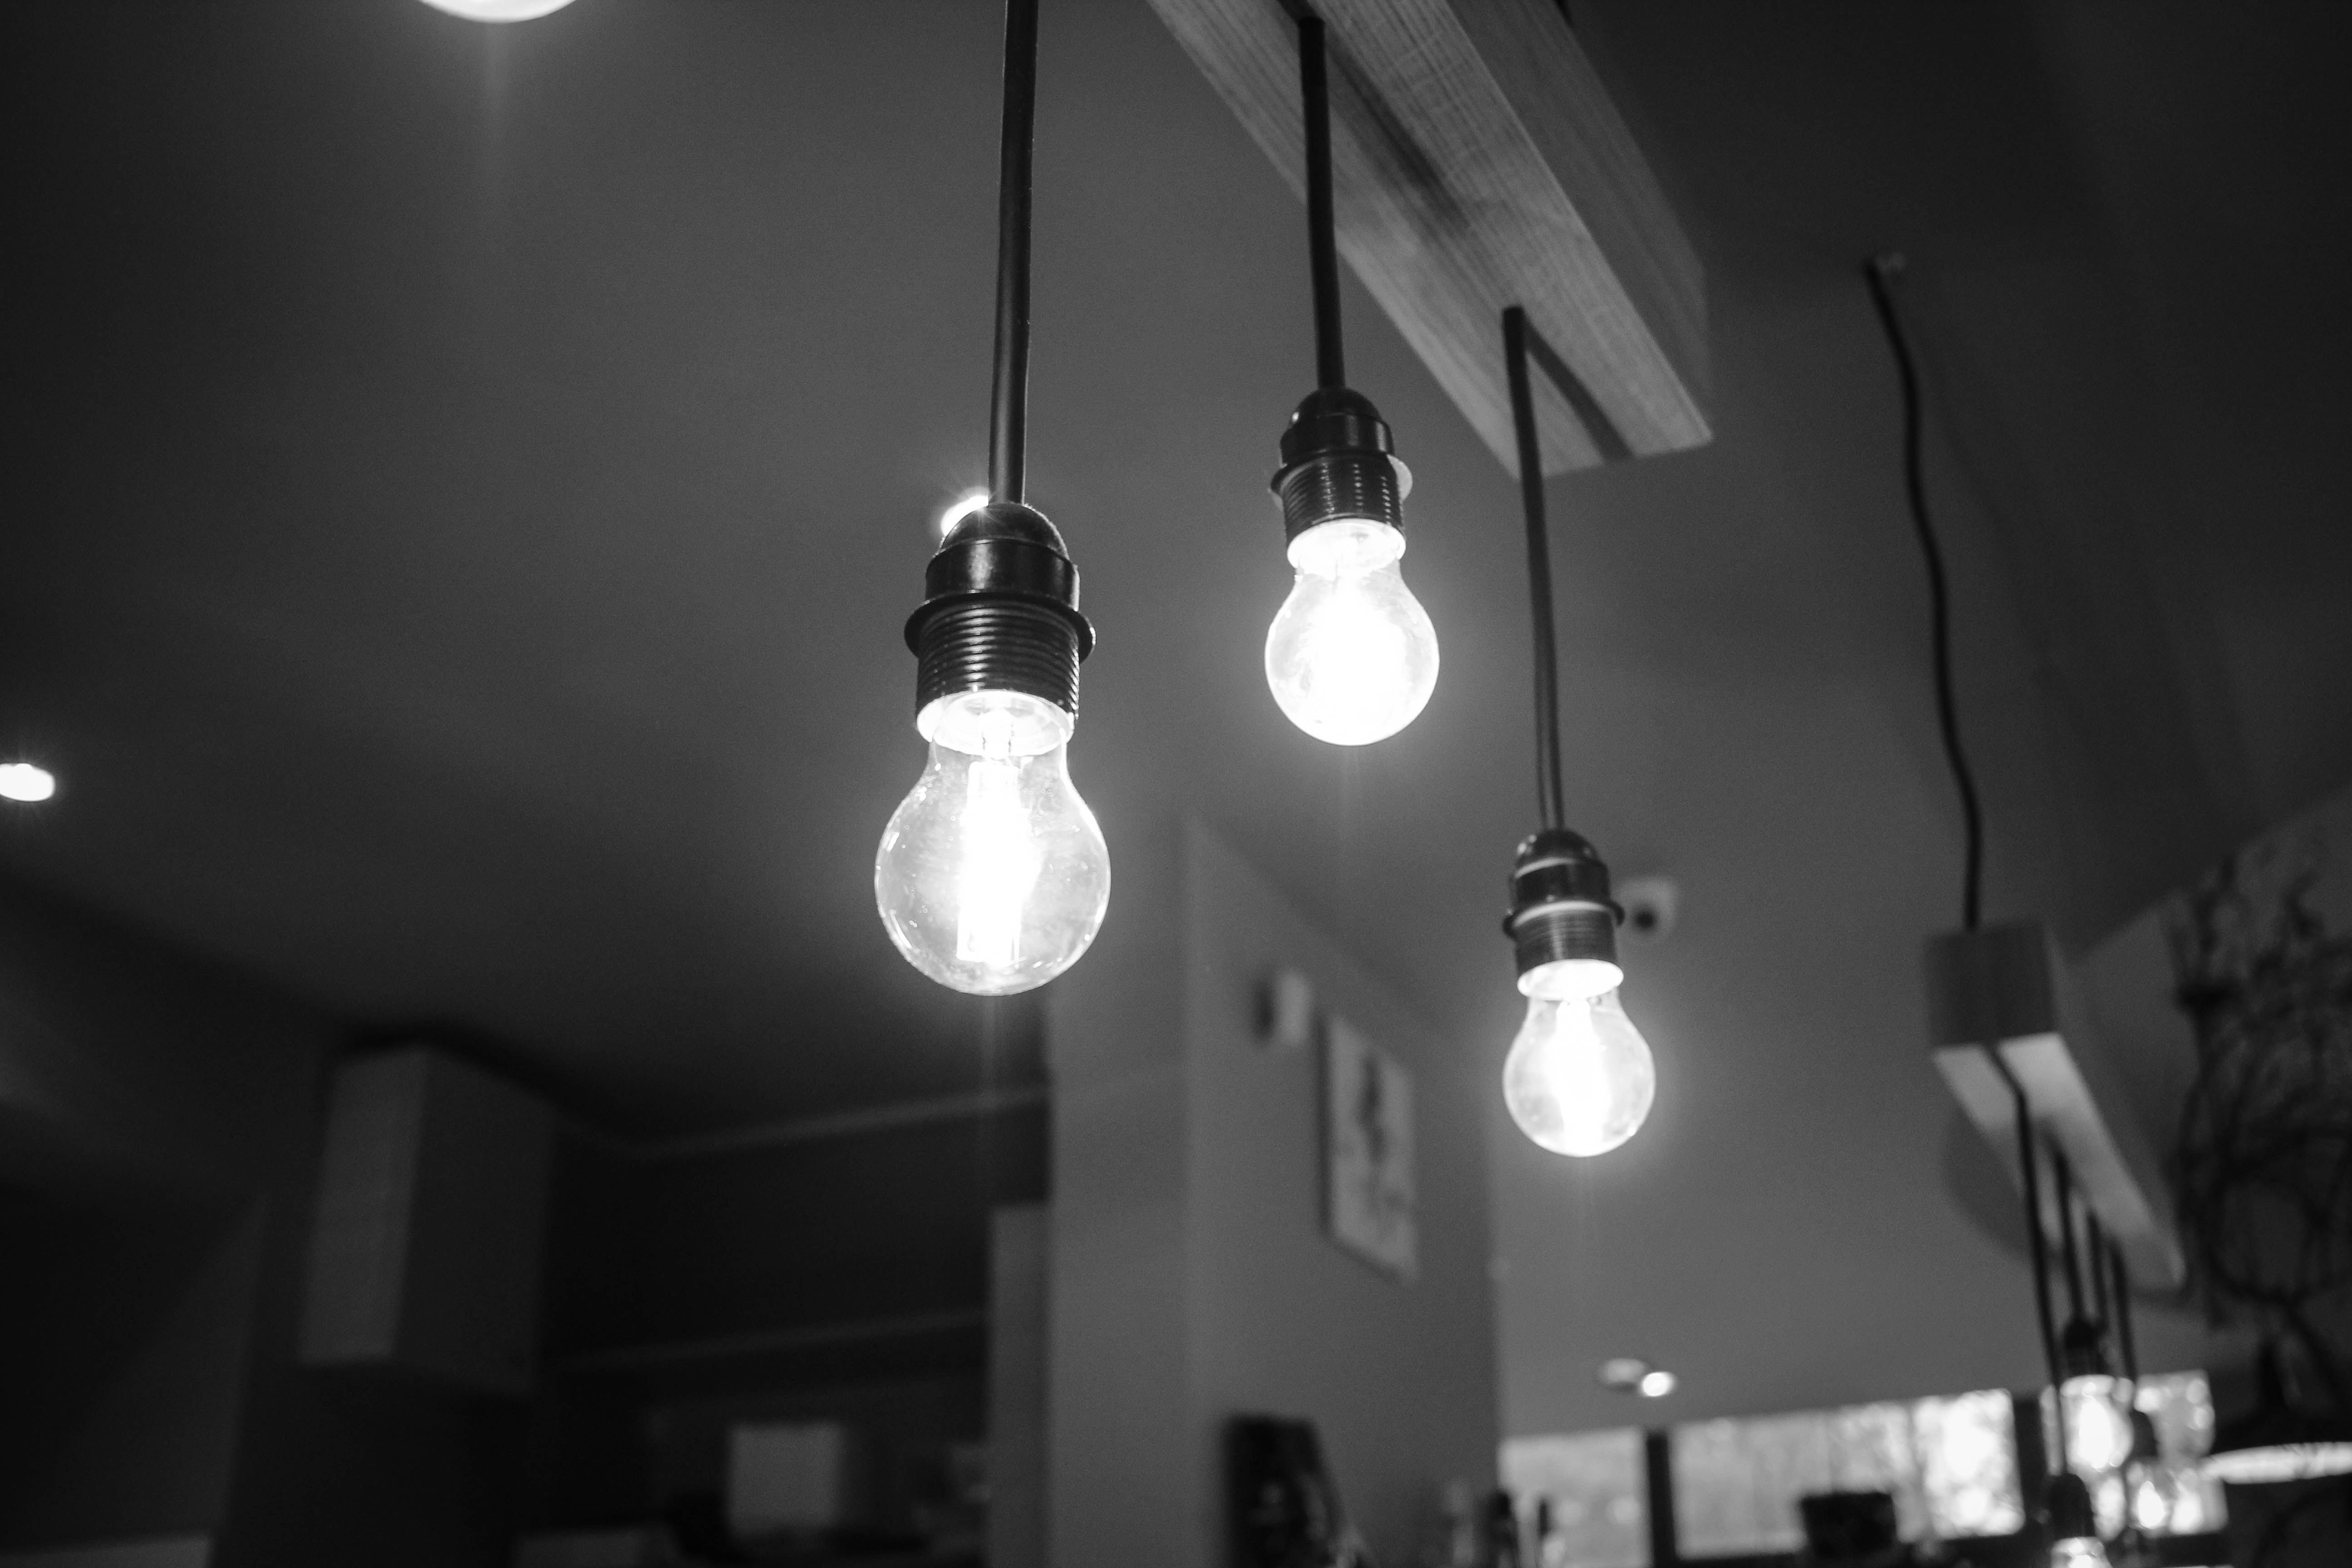 Free stock photo of black-and-white lights glass blur & Free stock photo of black-and-white idea light bulb azcodes.com